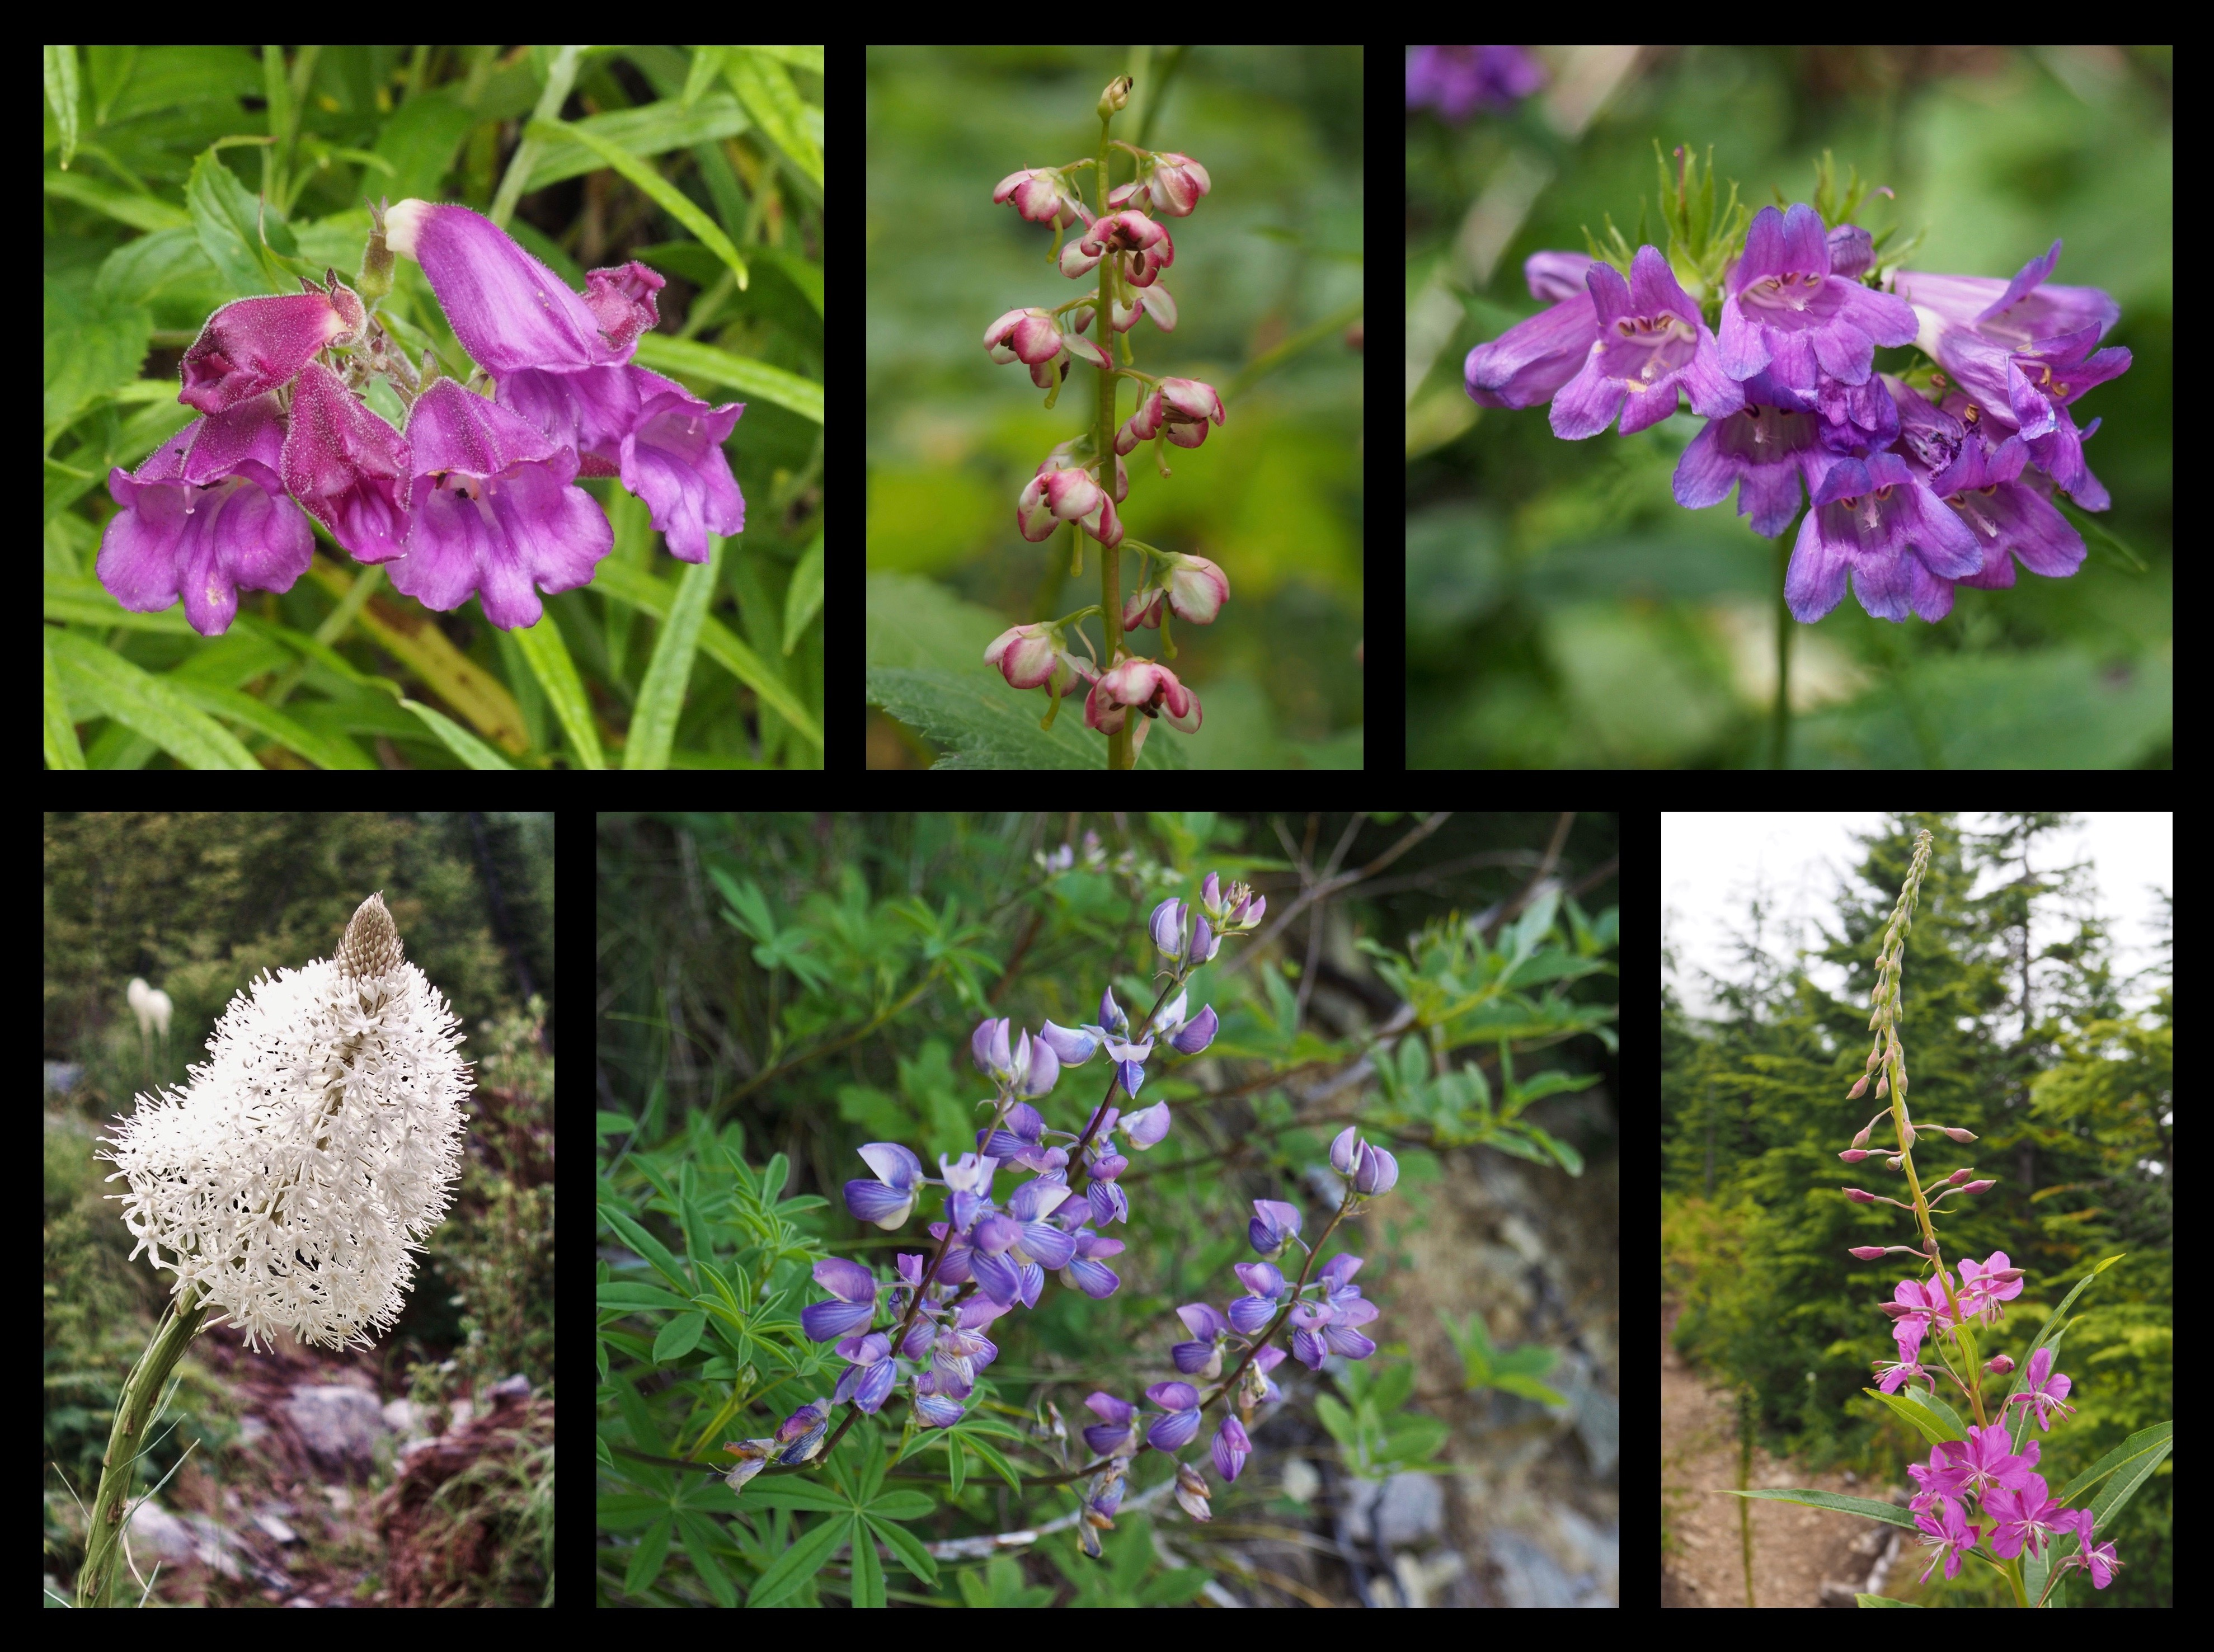 As the trail climbs, a few summer blooms appear where the stunted forest opens, including, clockwise from top left, woodland penstemon, or, woodland beardtongues (Nothochelone nemorosa); liverleaf wintergreen (Pyrola asarifolia); Cascade beardtongues (Penstemon serrulatus); fireweed (Chamerion angustifolium); lupine (Lupinus sp.); and beargrass (Xerophyllum tenax). Mount Washington Trail, July 09, 2009 and July 30, 2016.